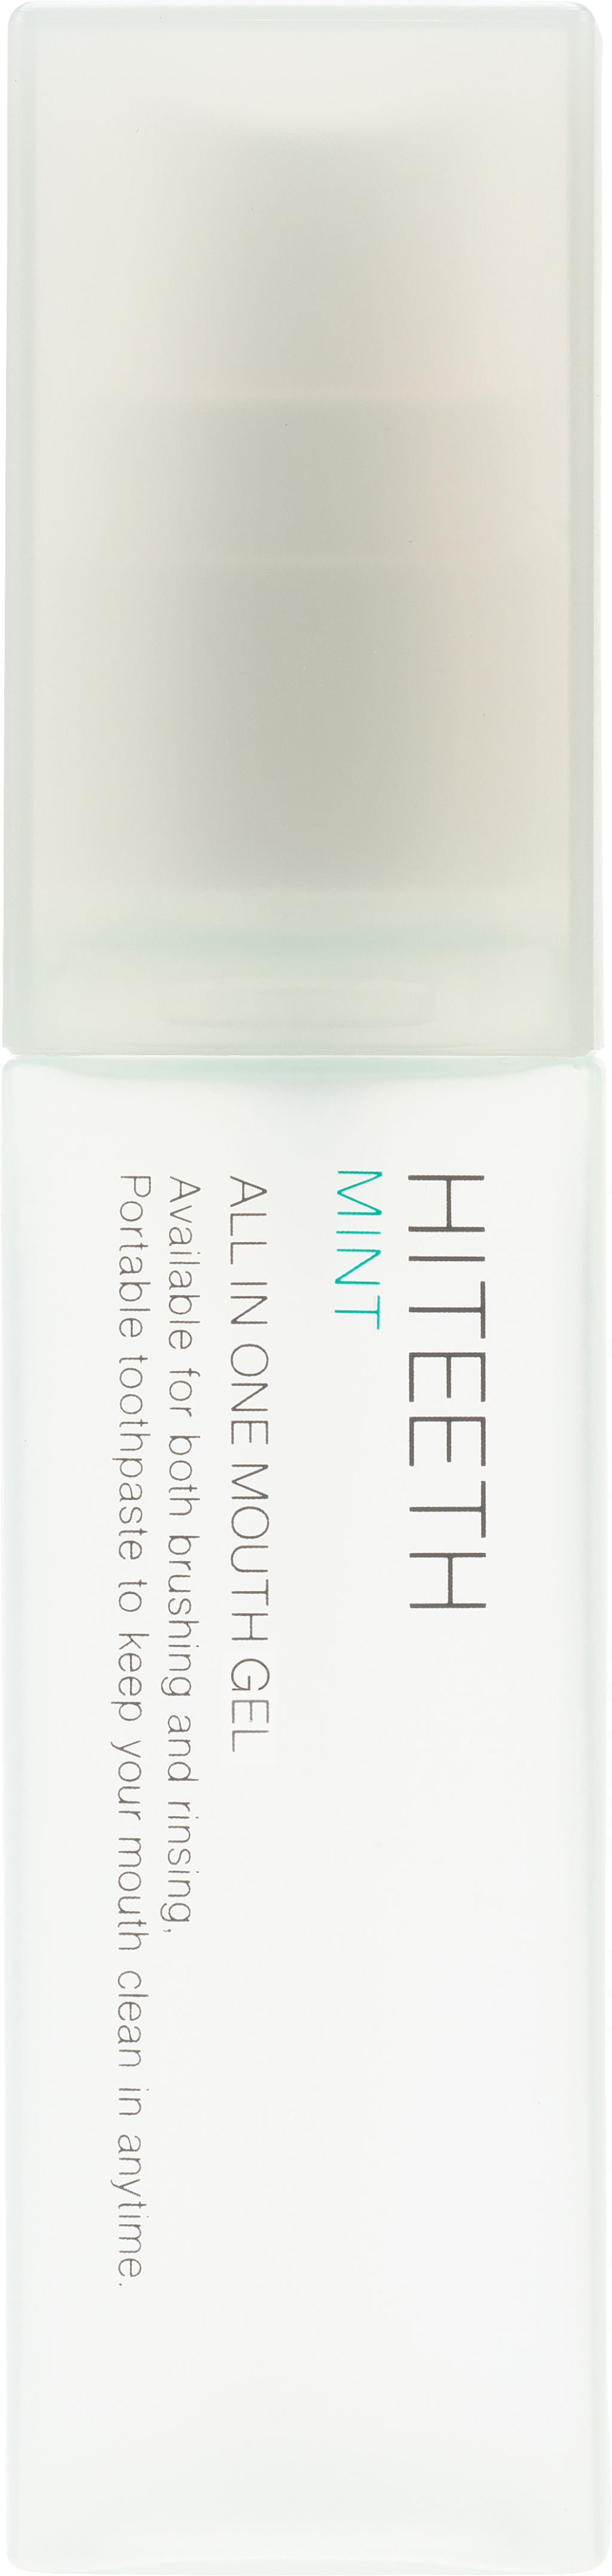 HITEETH ALL IN ONE MOUTH GEL RBP